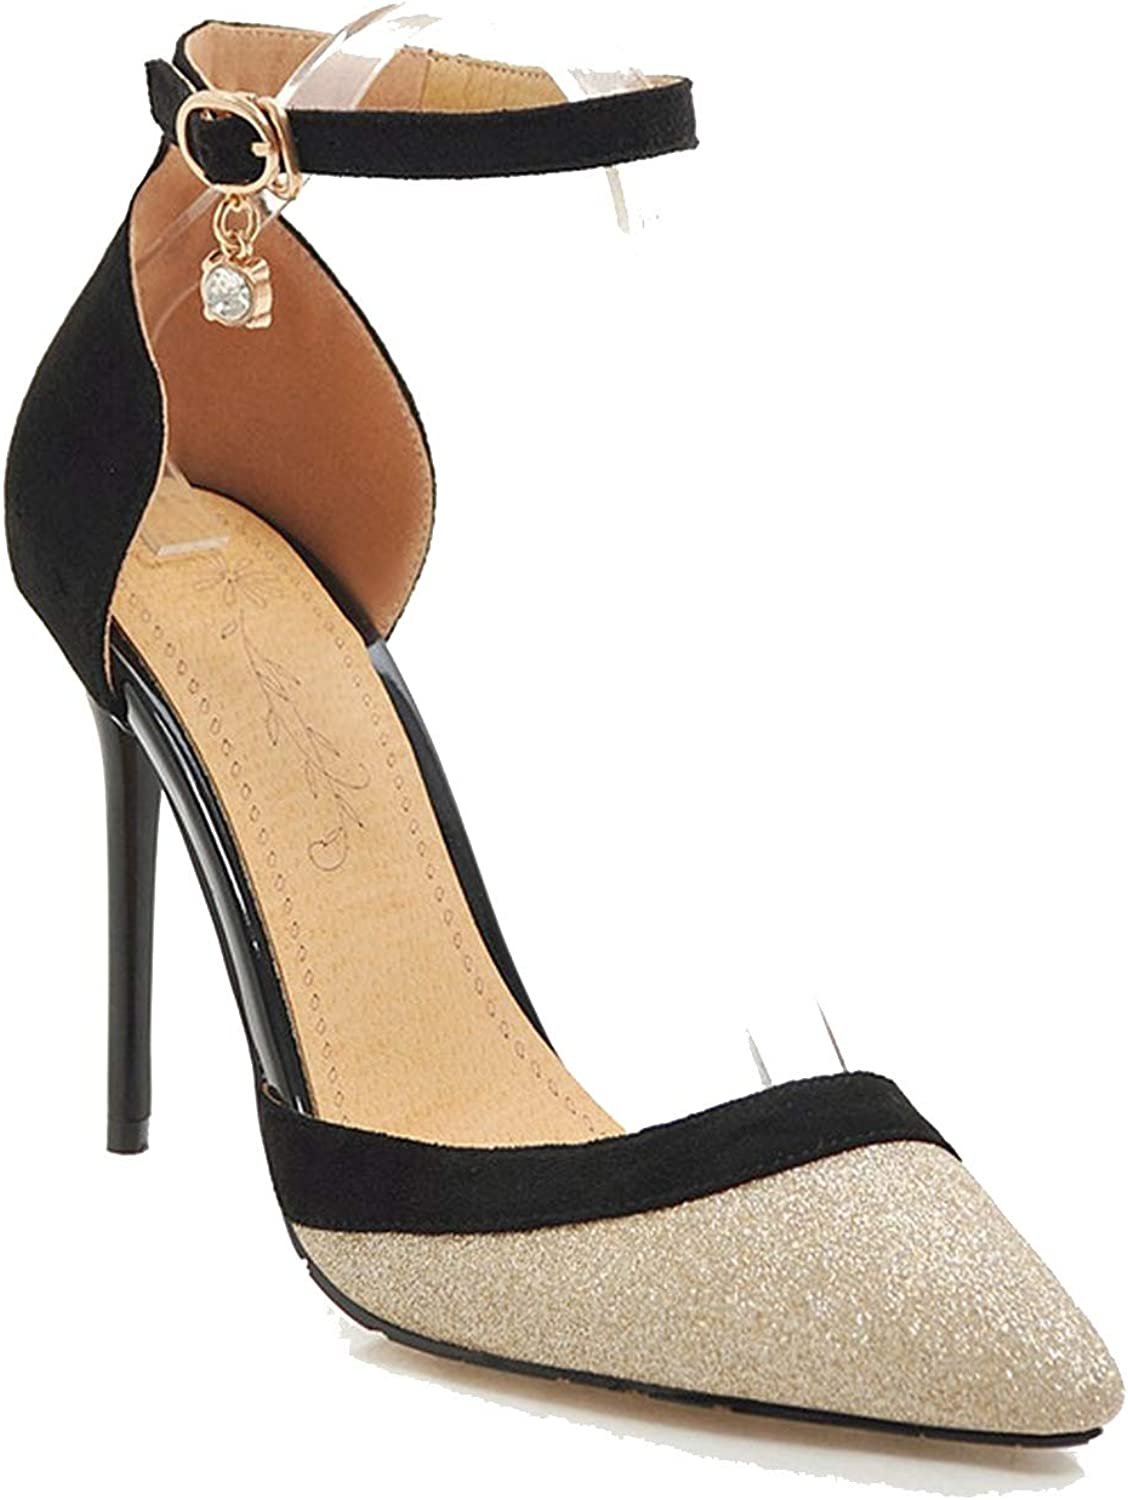 Pumps Women shoes Mixed colors Summer shoes Buckle Sexy high Heels shoes Elegant Wedding shoes gold,13